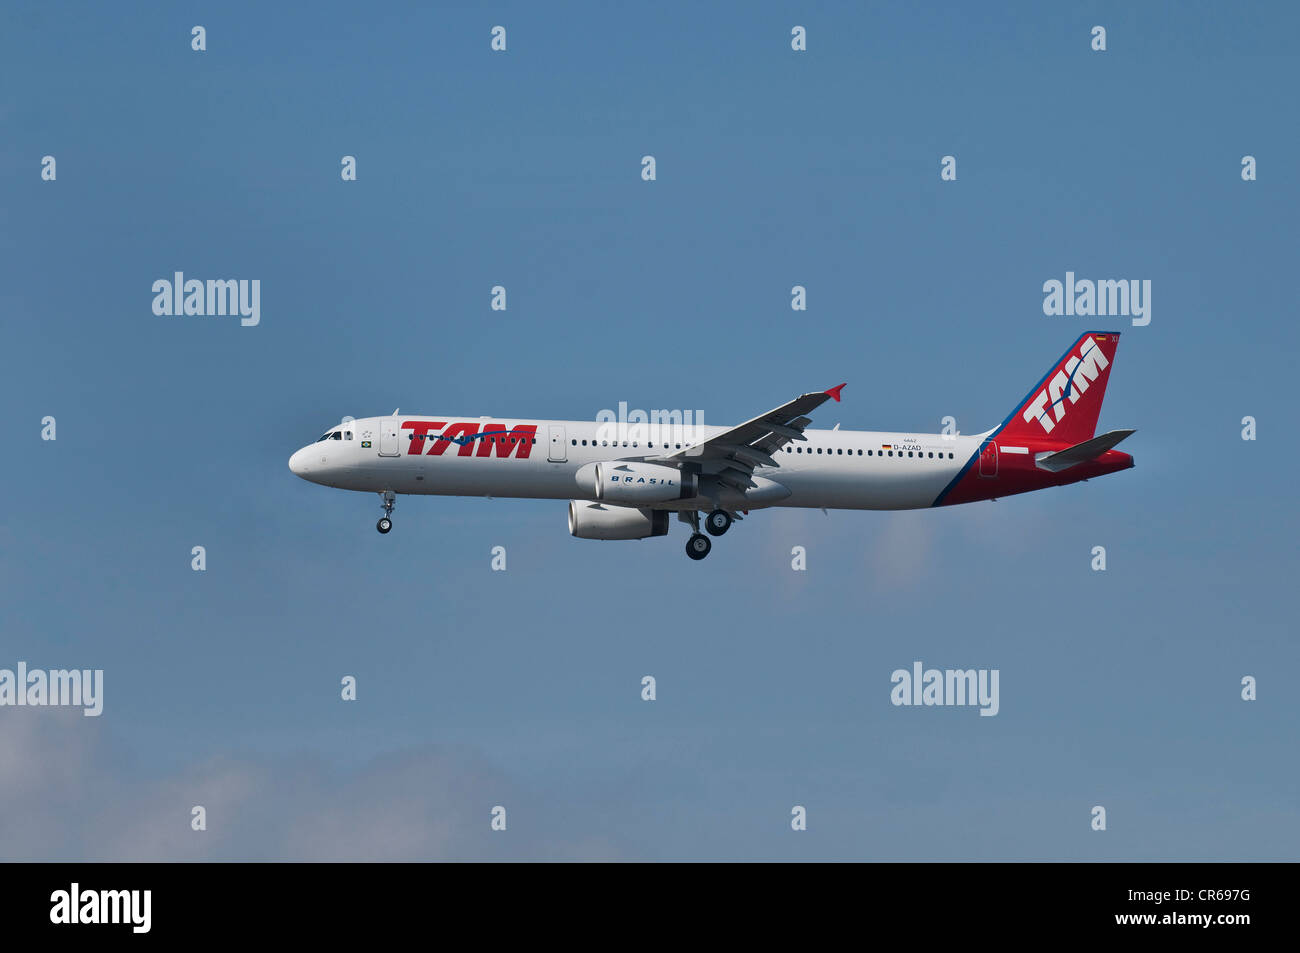 Brazil's TAM Airlines passenger plane in flight - Stock Image